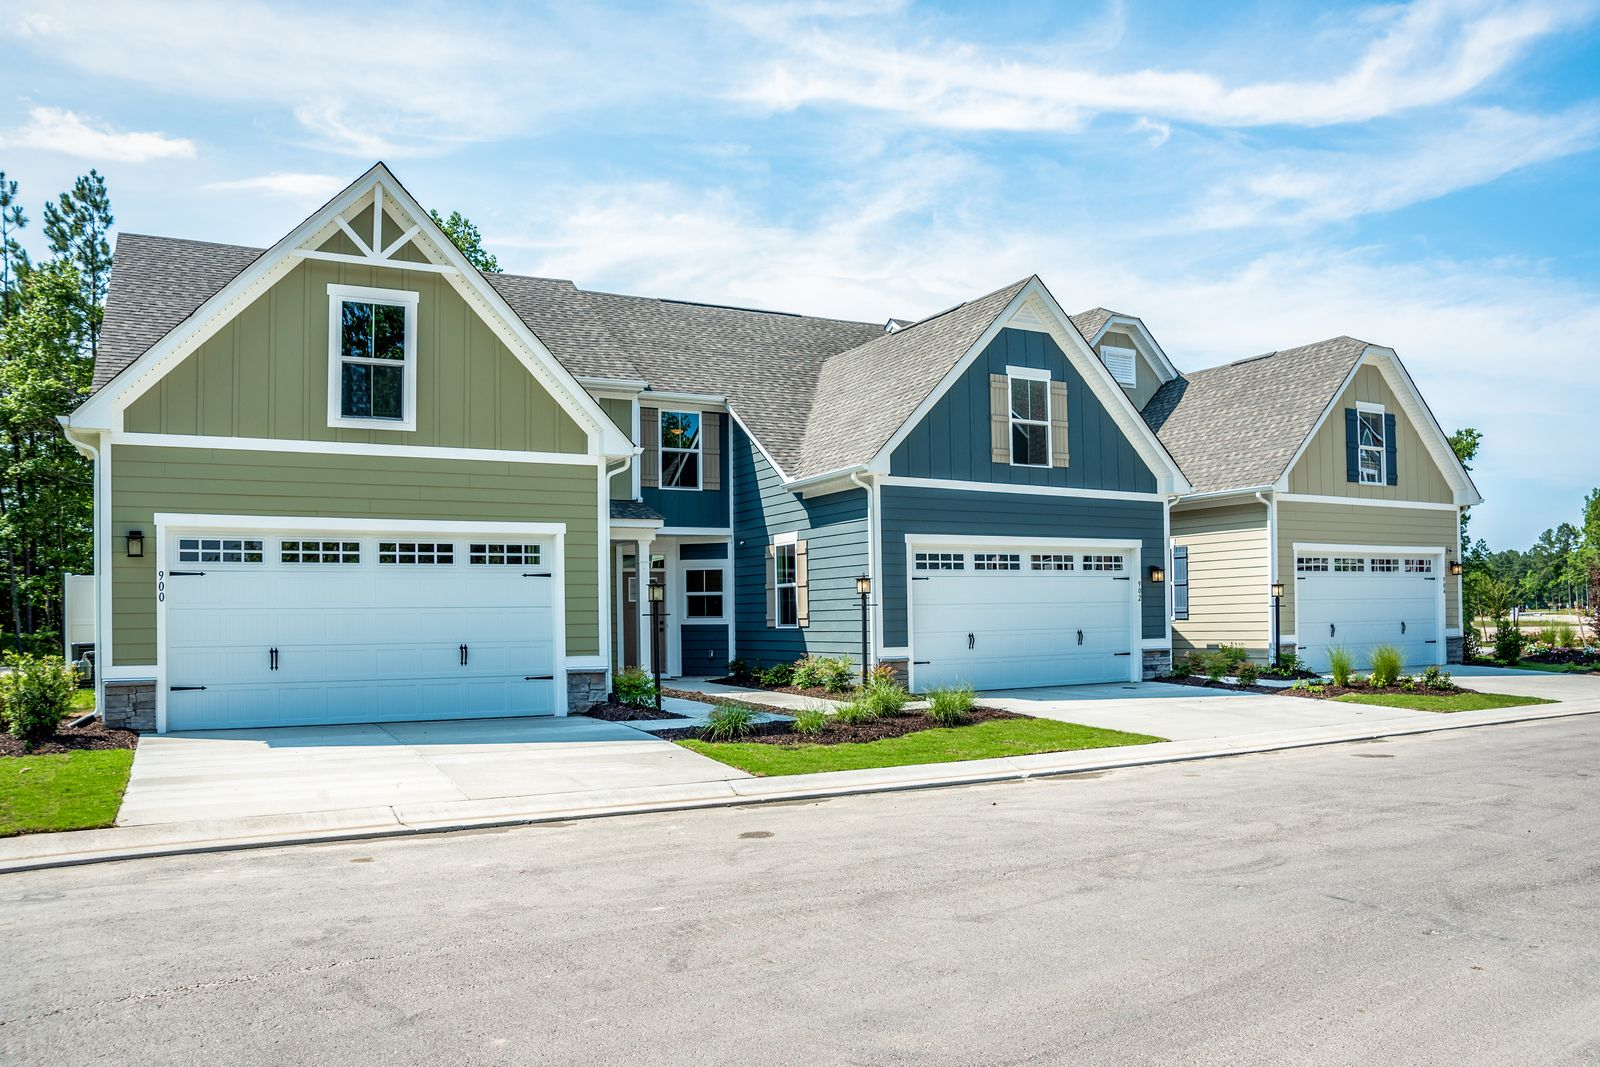 WELCOME TO THE VILLAS AT GUN CREEK:The lowest-priced new homes on Grand Island with 2-car garages in a low-maintenance community.Click here to schedule your in-person or virtual appointment today!